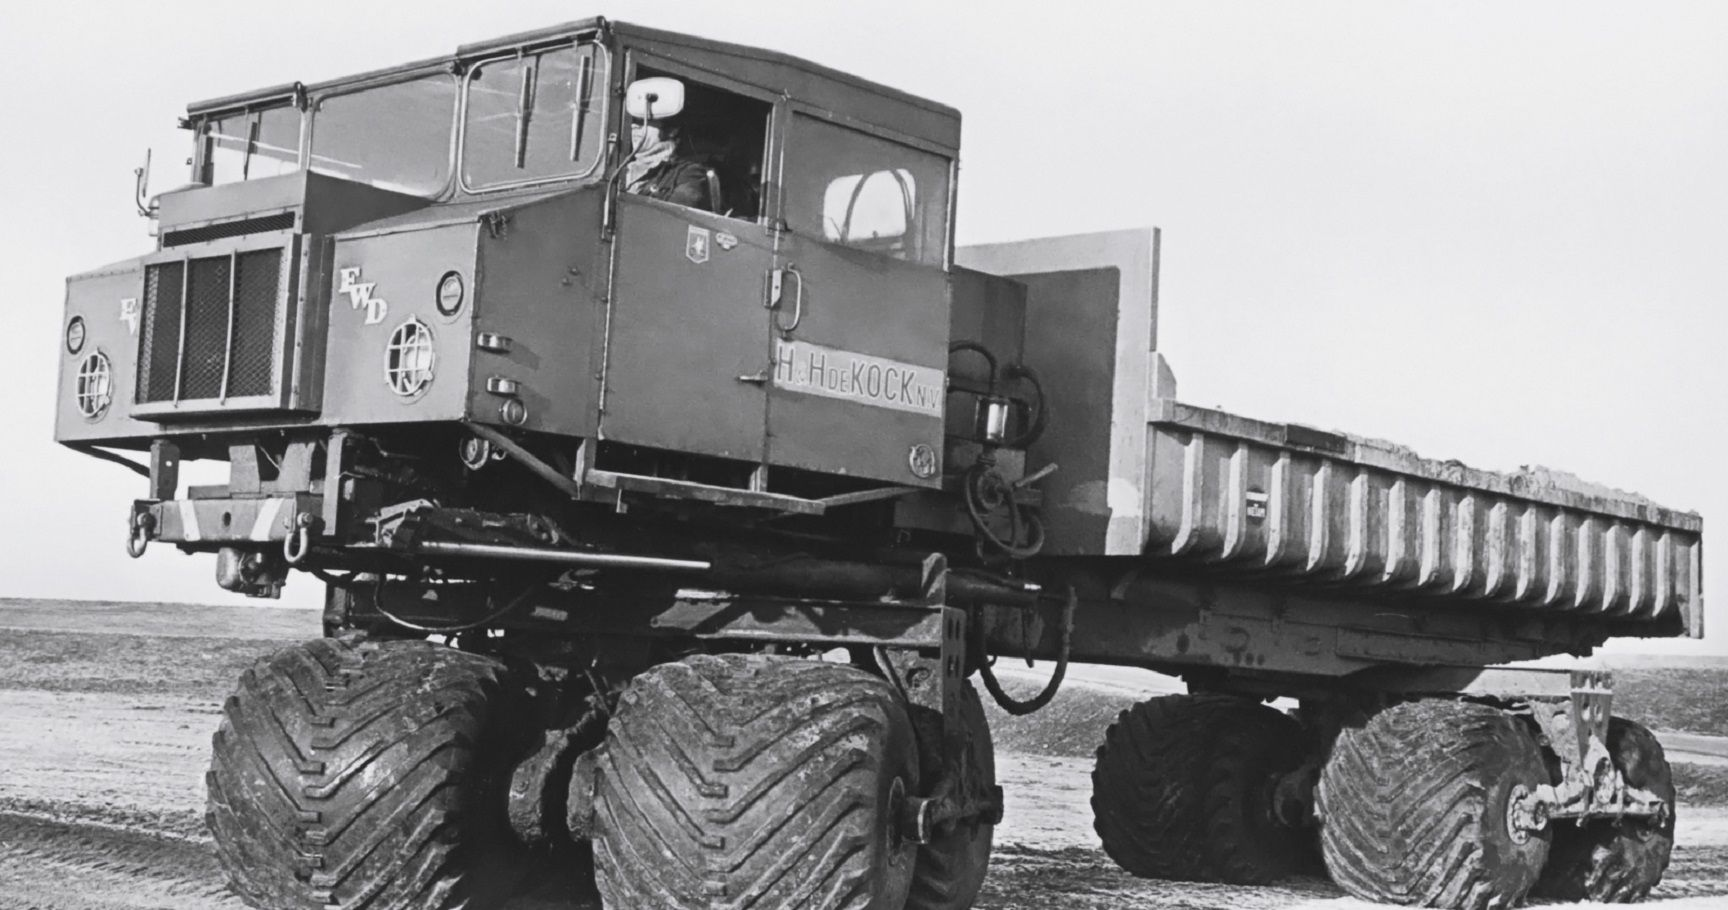 The 10 Craziest Off-Road Vehicles Ever Made